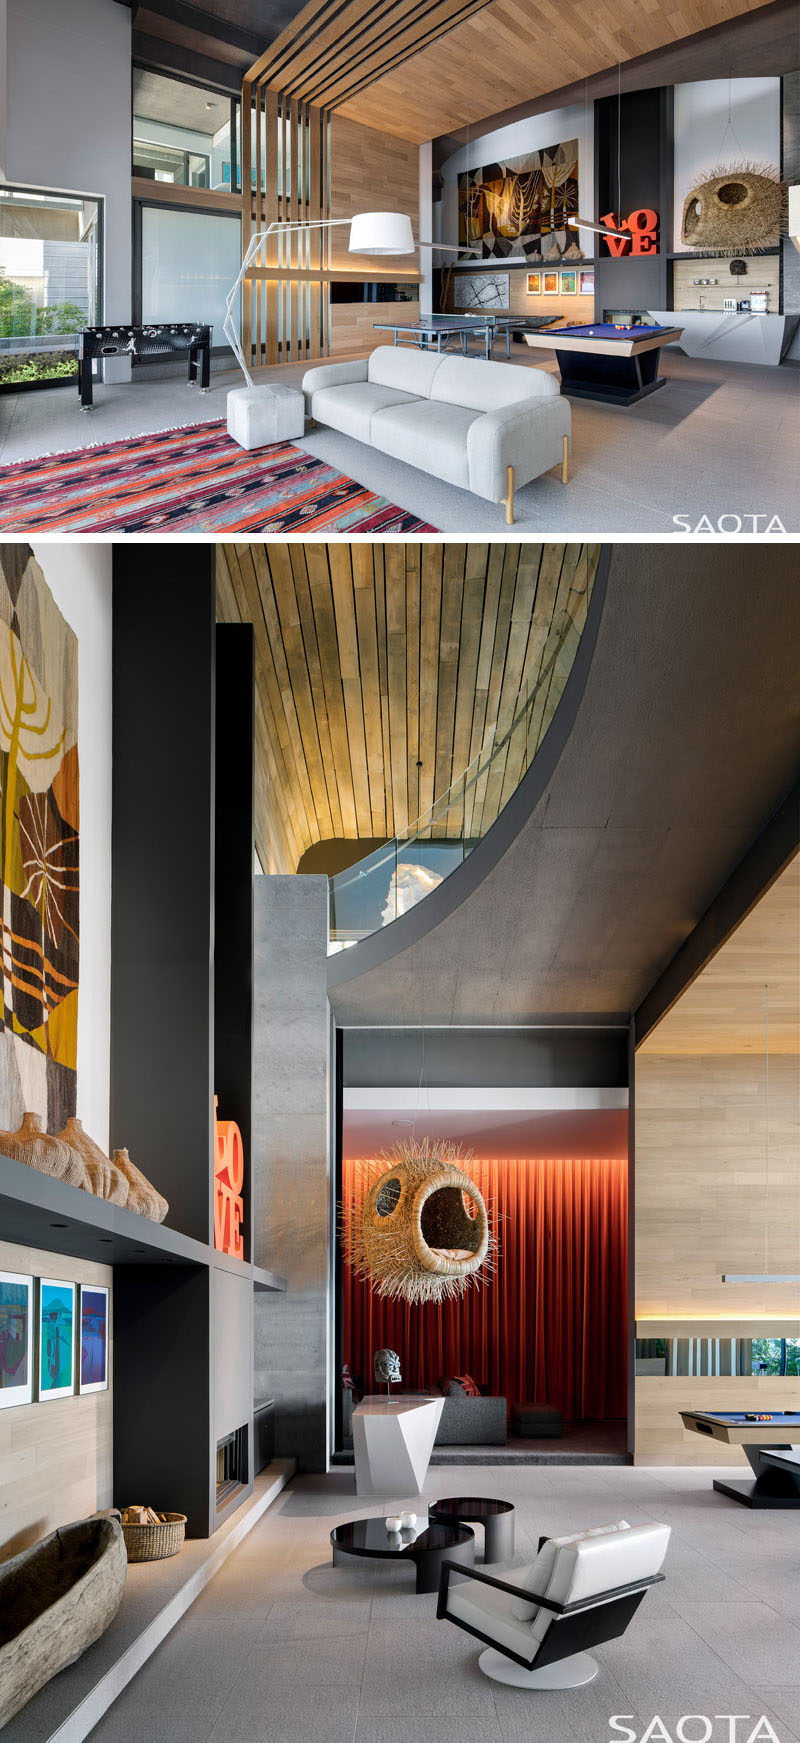 This modern house has a cinema and games room, that features double height ceiling and a variety of artwork, like the Blowfish by Porky Hefer and a Cecil Skotnes tapestry. #ModernGamesRoom #ModernInteriorDesign